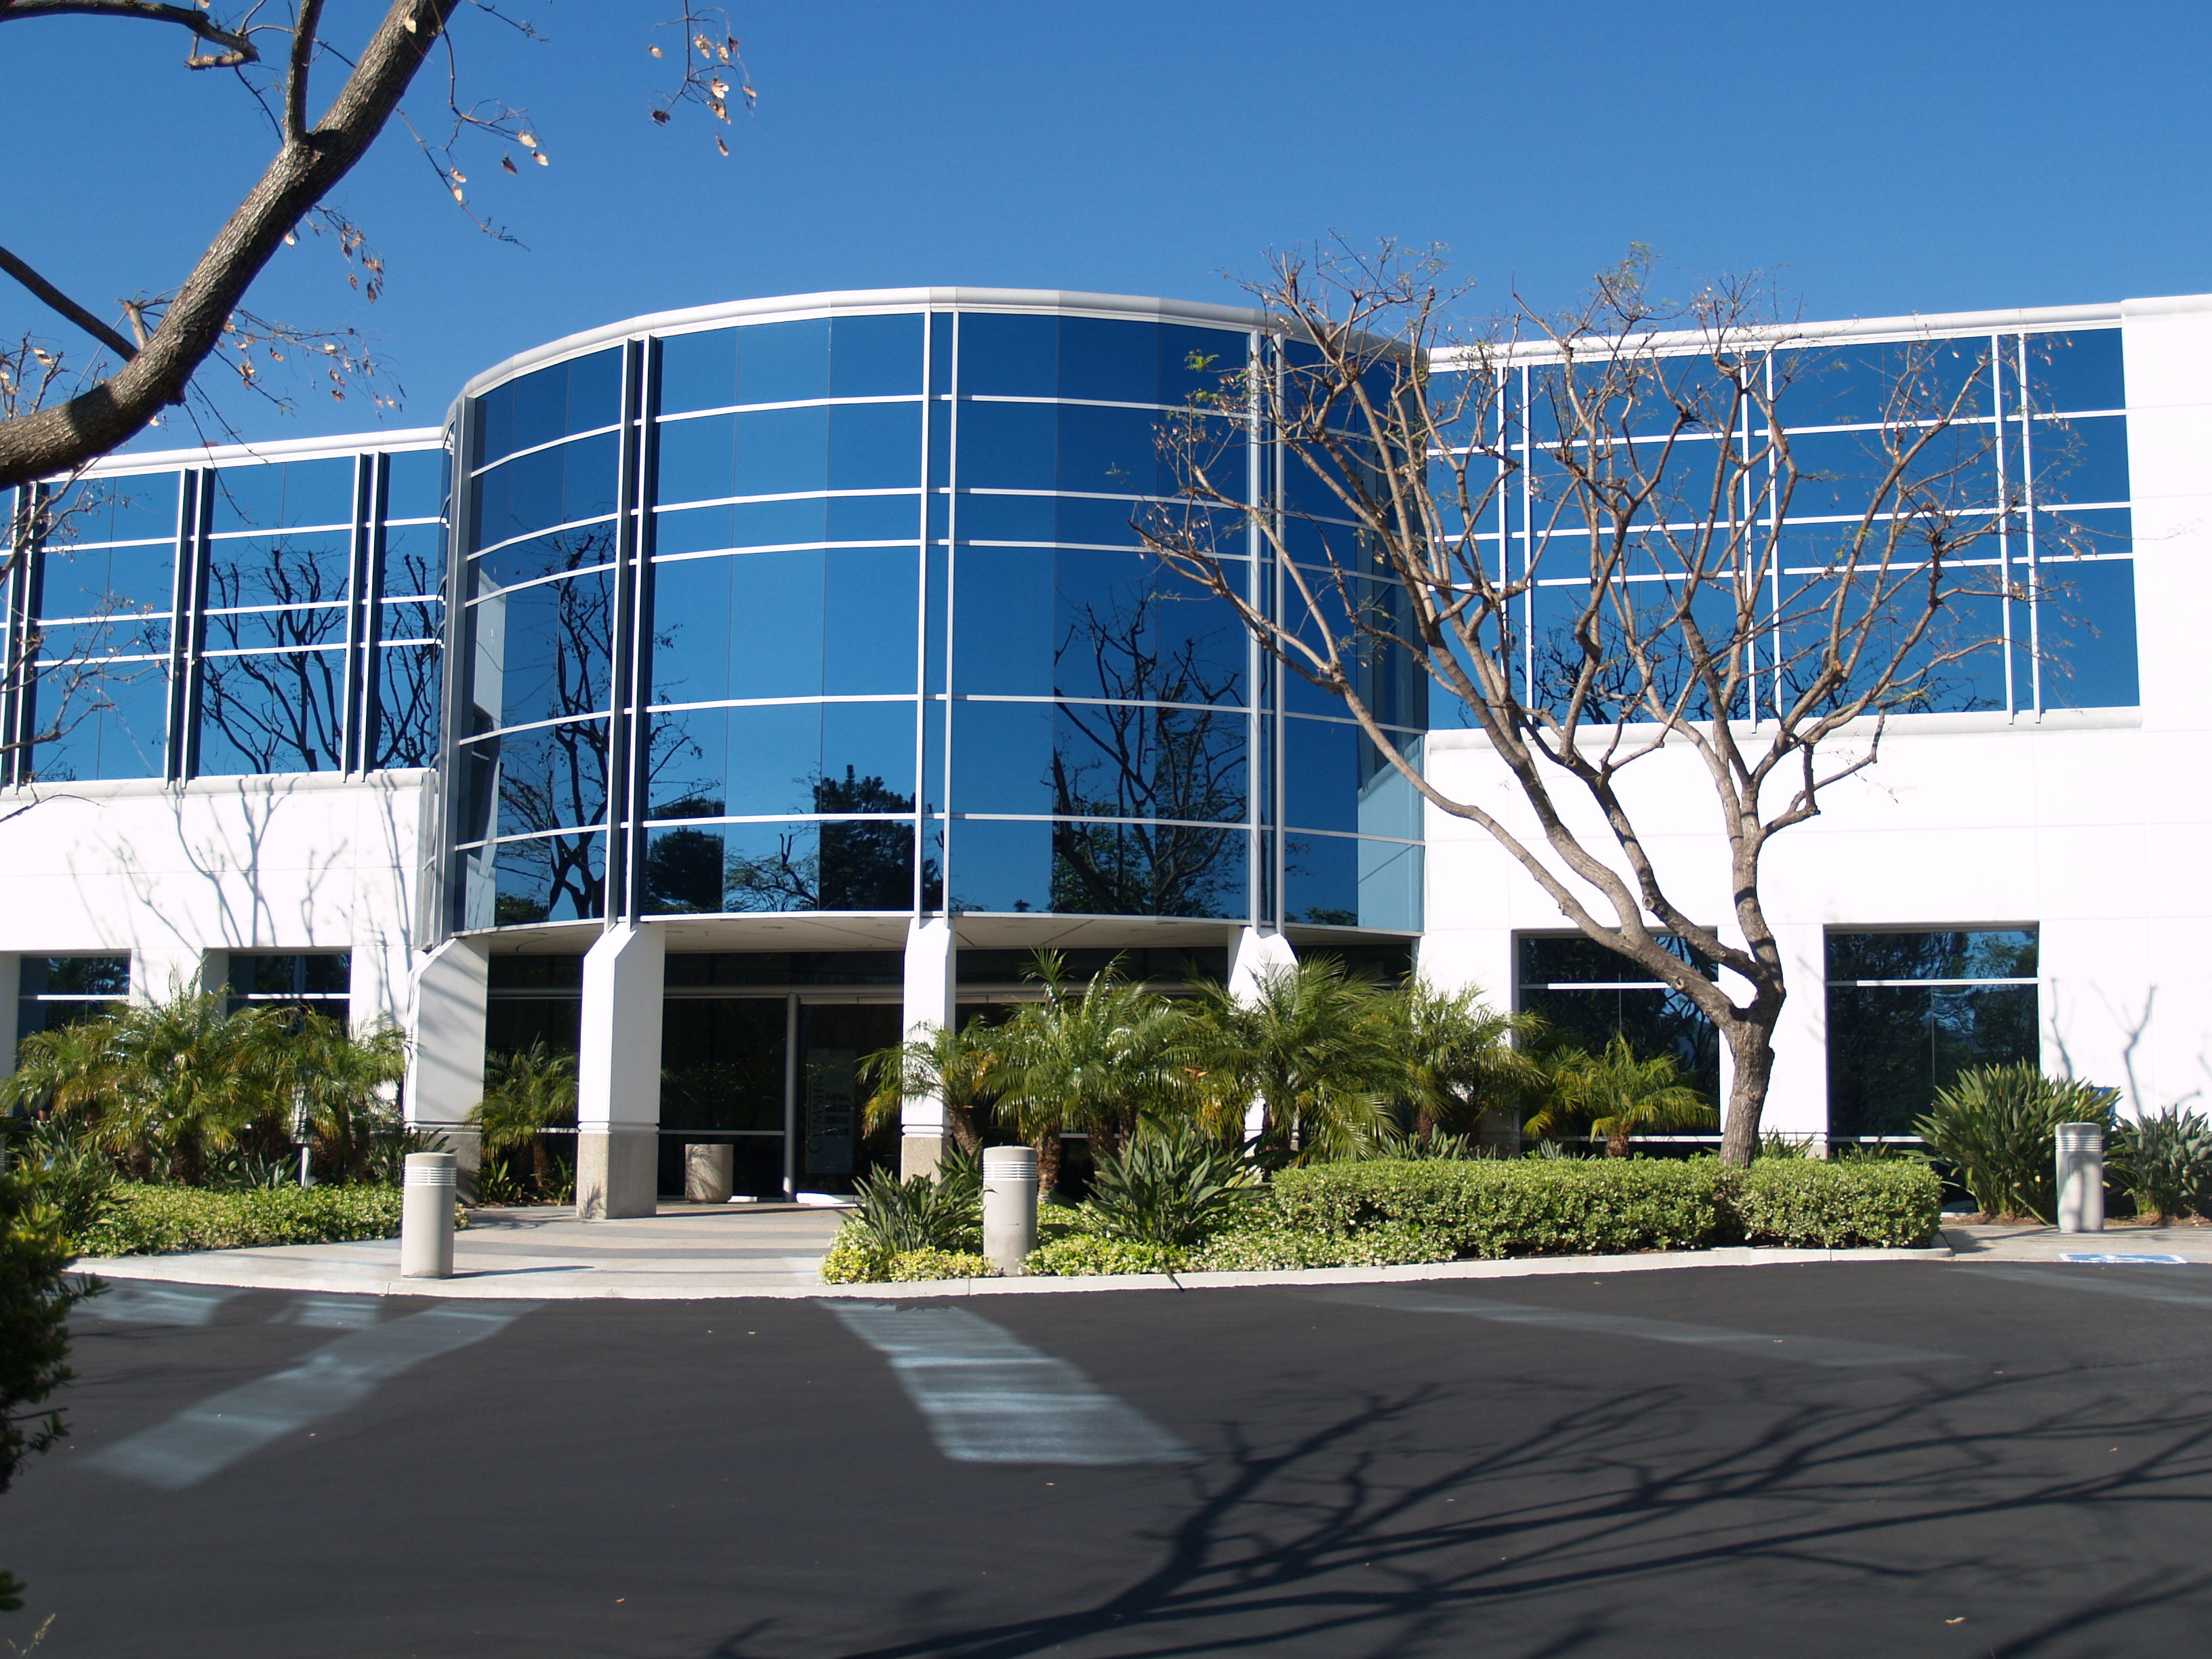 Corporate building pictures to pin on pinterest pinsdaddy for Office building exterior design